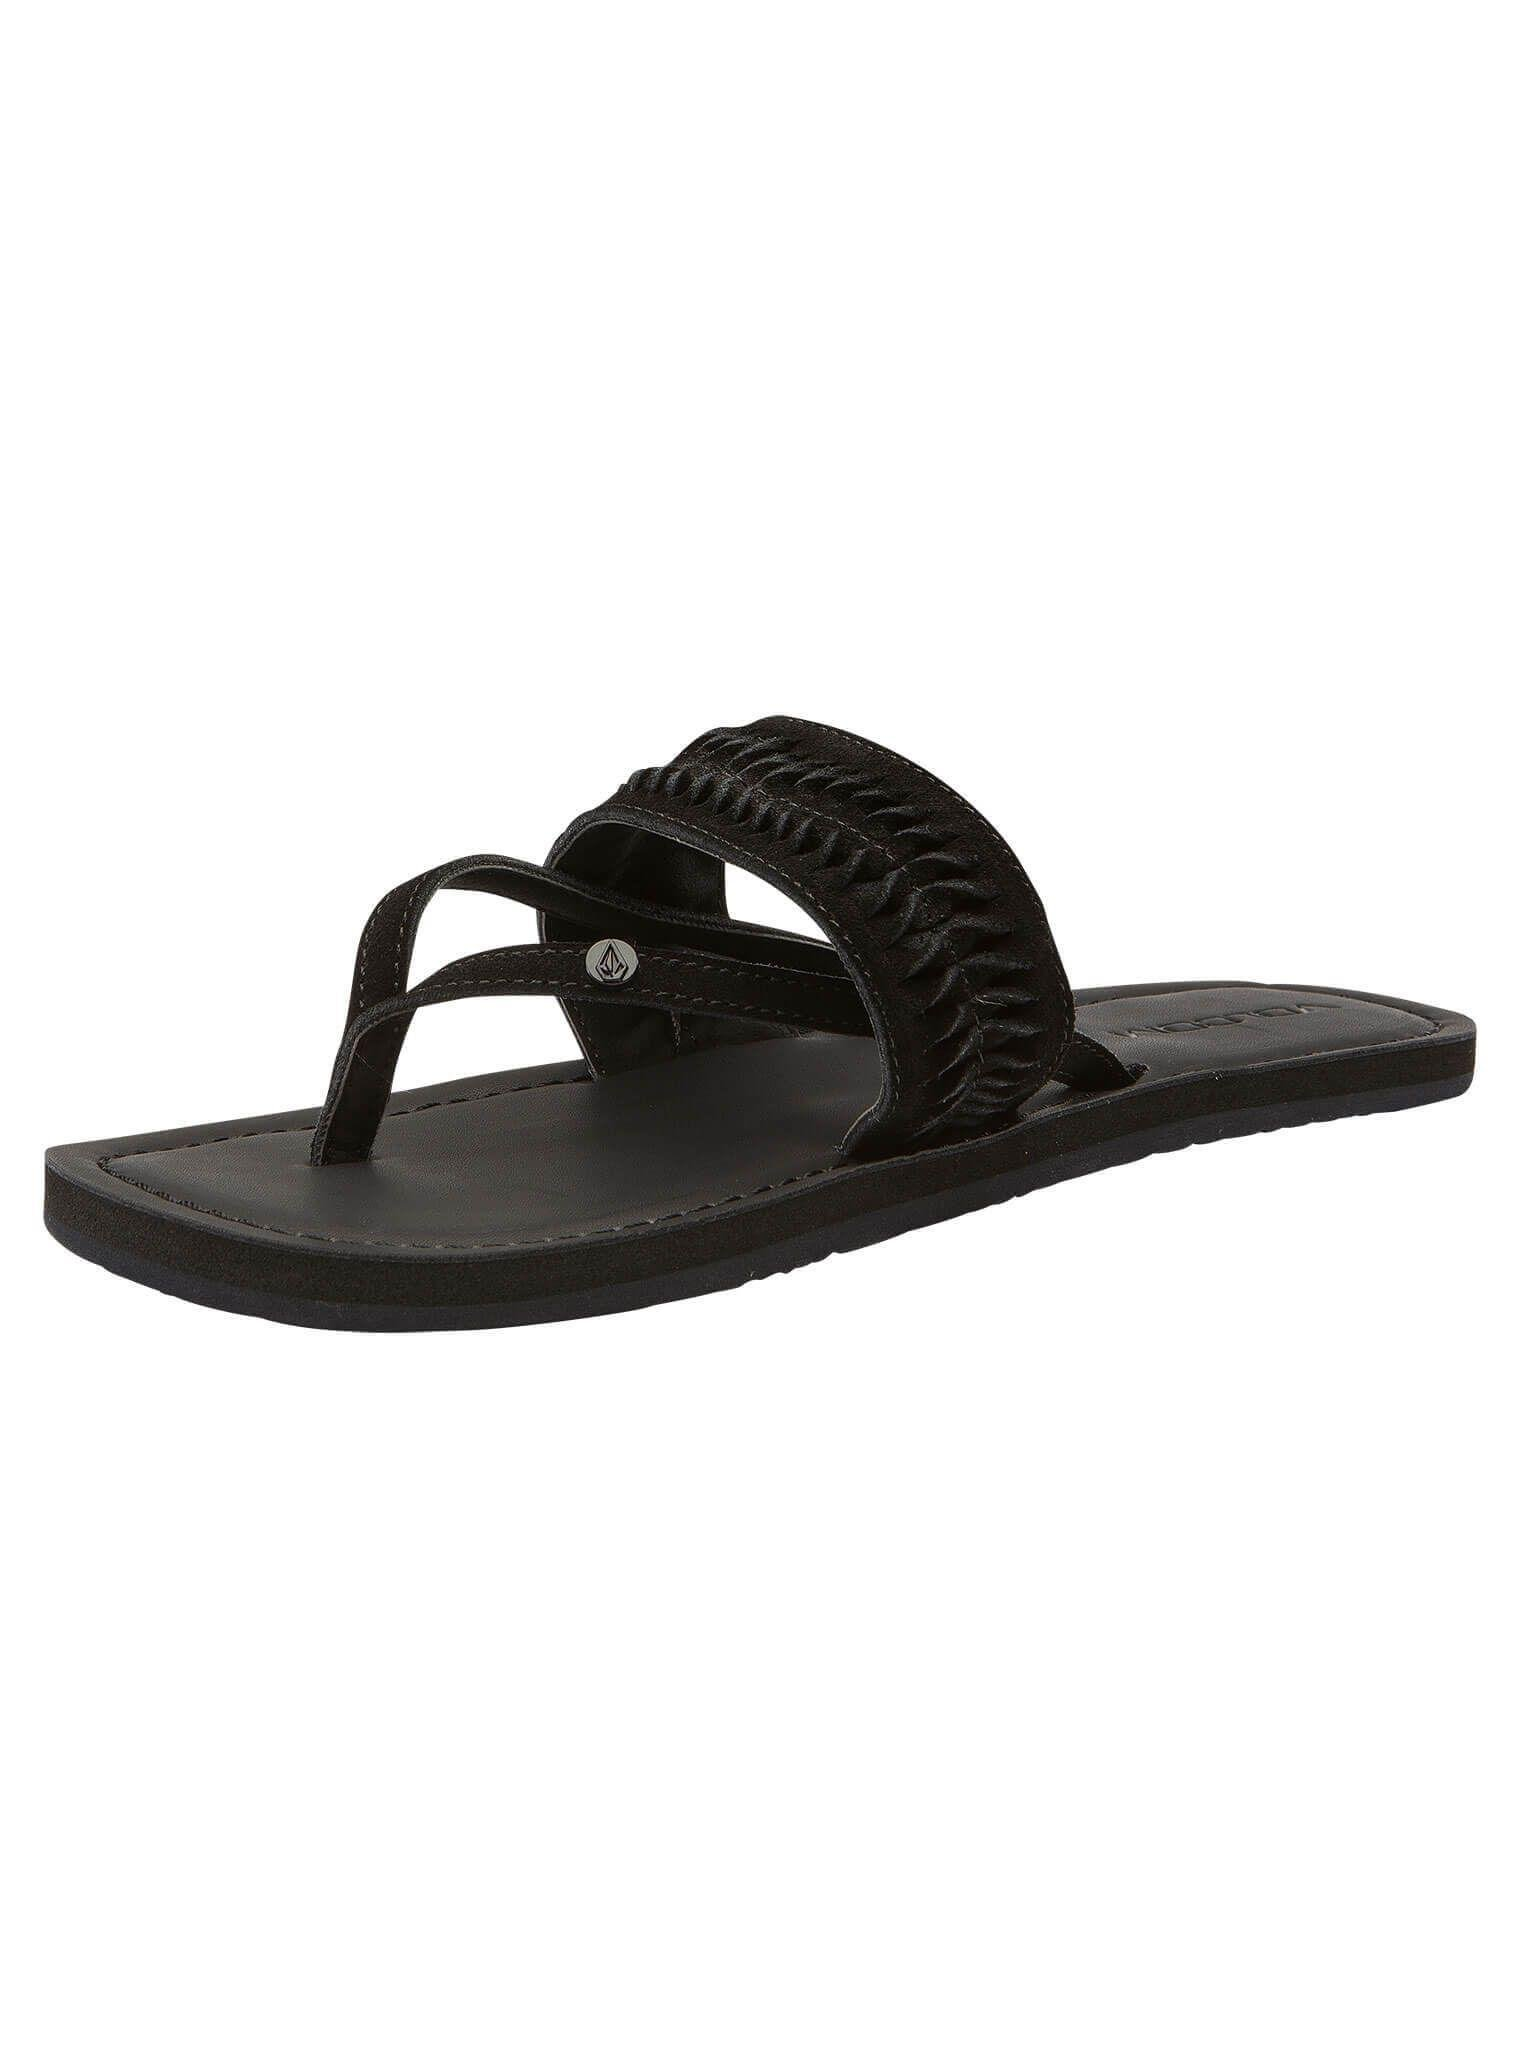 Volcom Costa Sandals Women black Damen nHlRb2